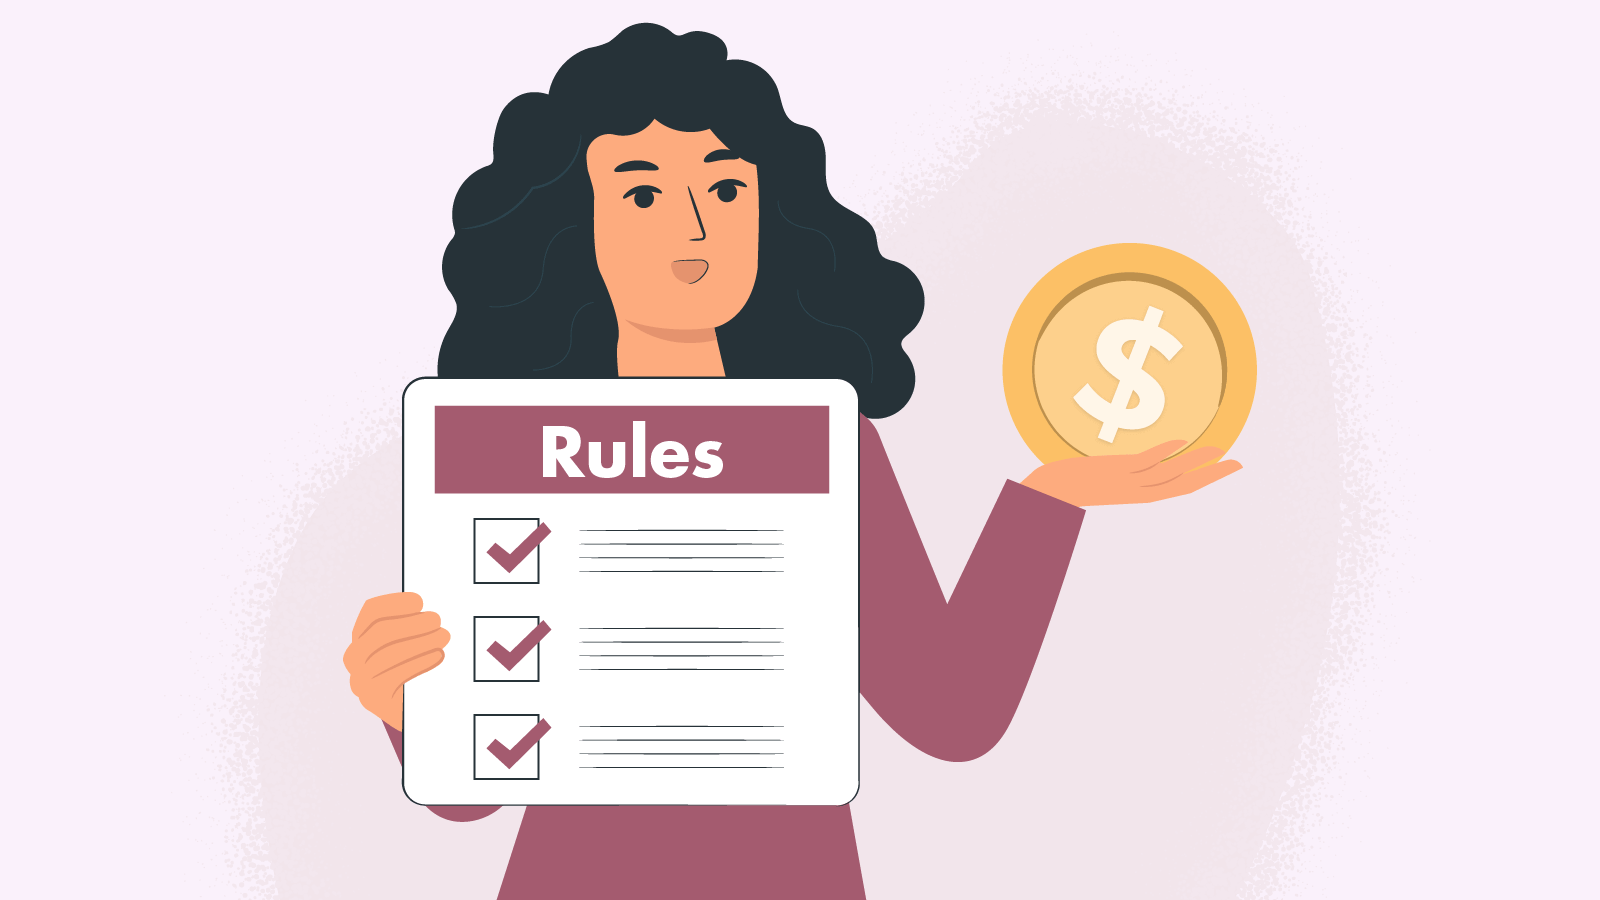 The rules of deposits & withdraw